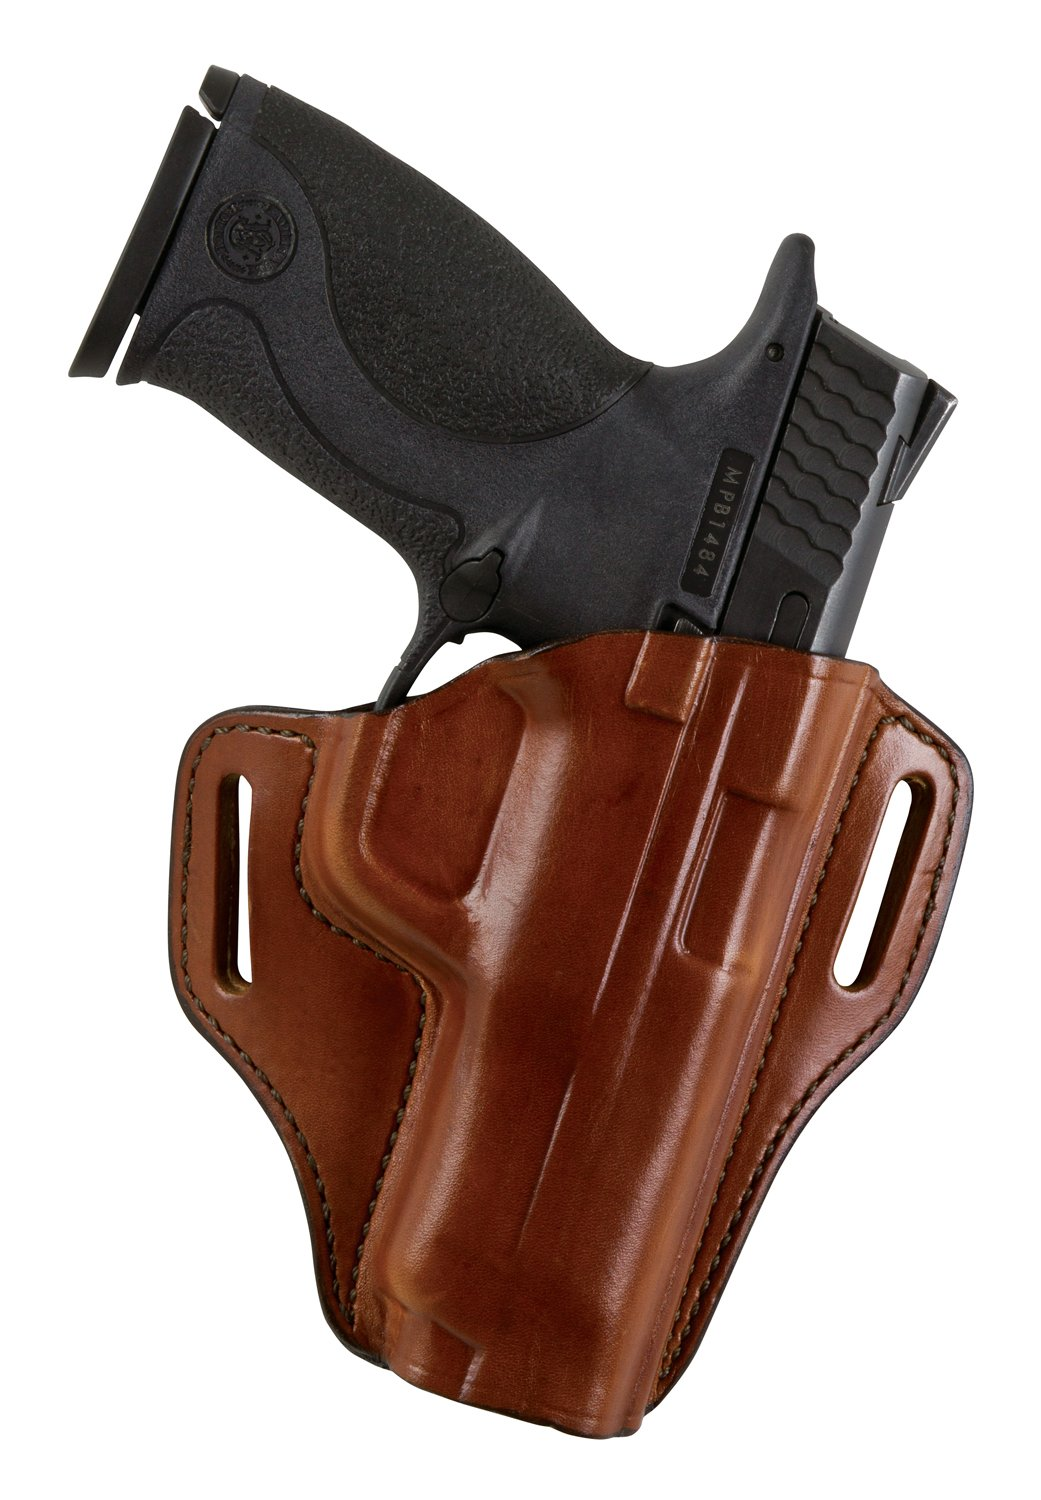 Amazon.com : Bianchi Model 57 Remedy Holster Fits S&W 36, 640 And ...